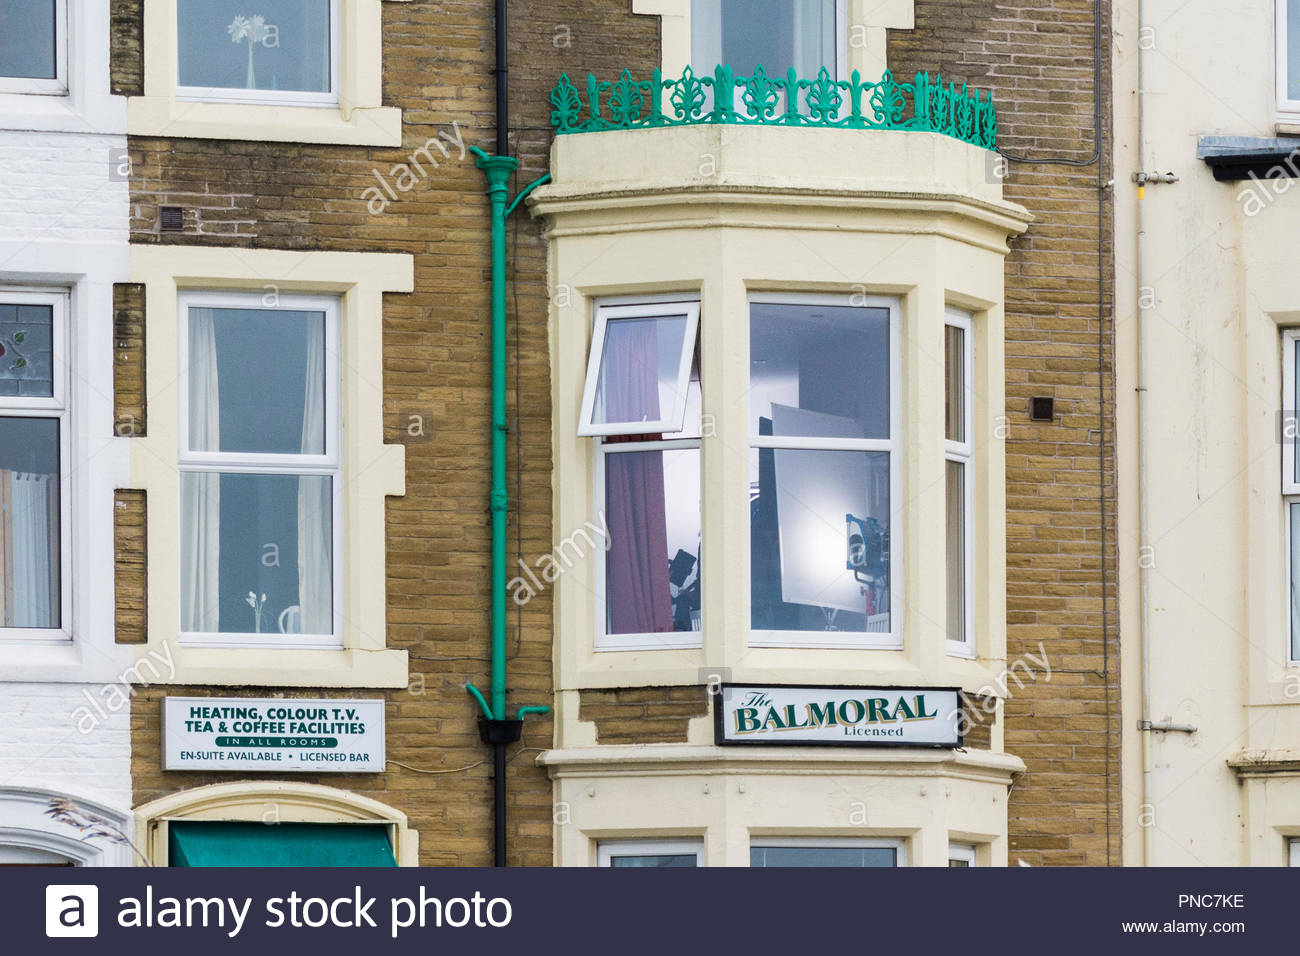 The Balmoral Hotel Guest House in Marine Road West, used as a film location for the ITV crime drame 'The Bay' - Stock Image